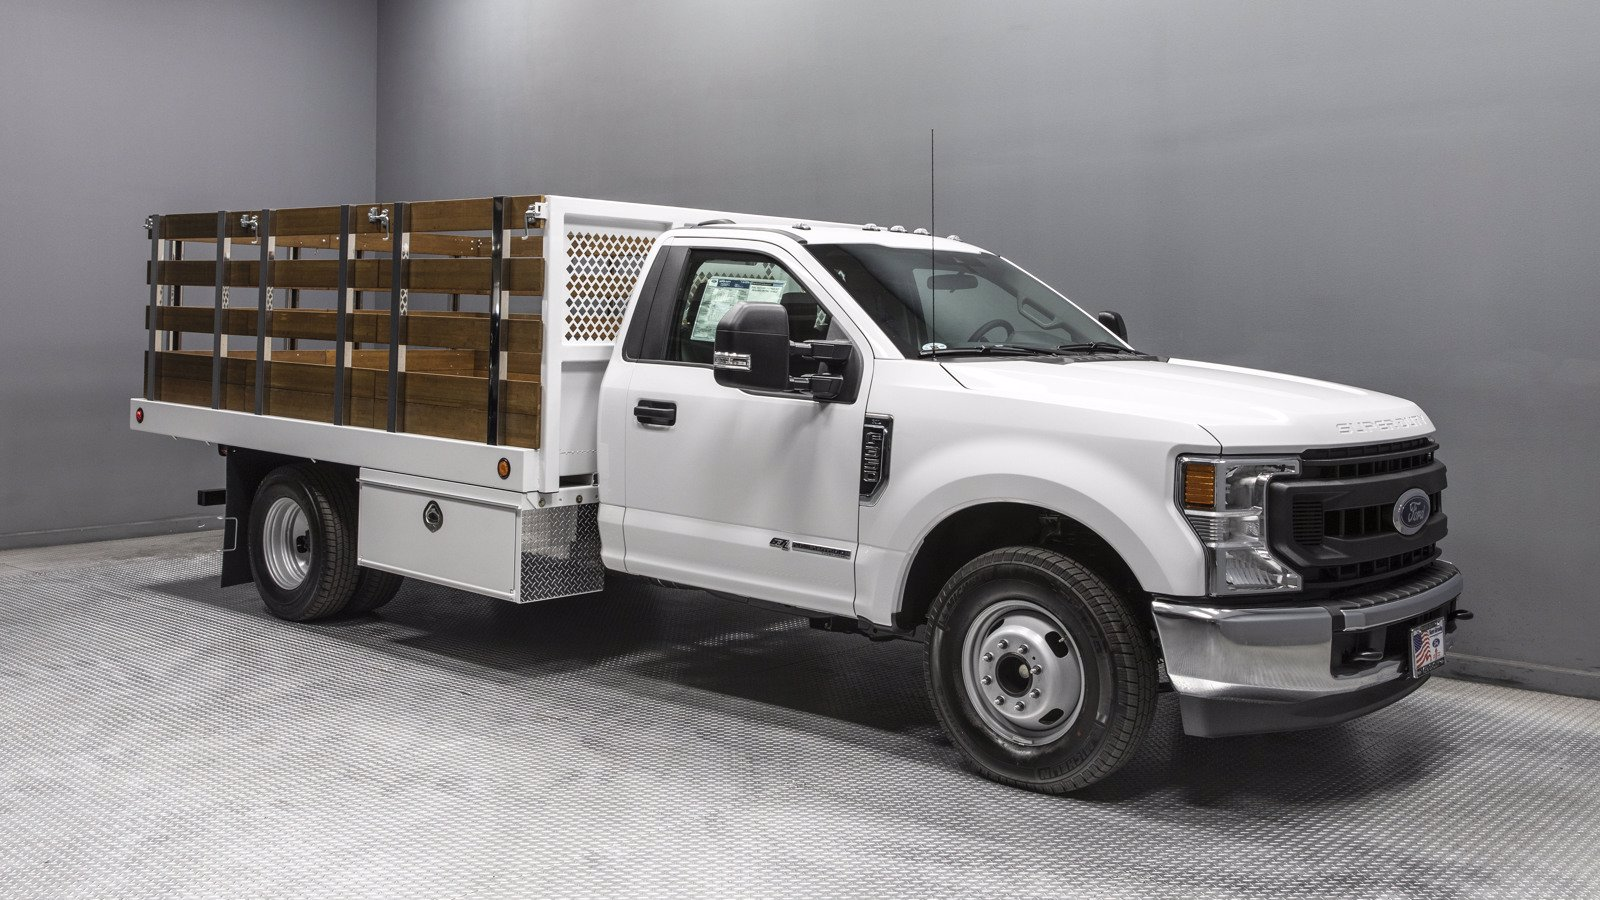 2020 Ford F-350 Regular Cab DRW 4x2, Royal Stake Bed #07923 - photo 1